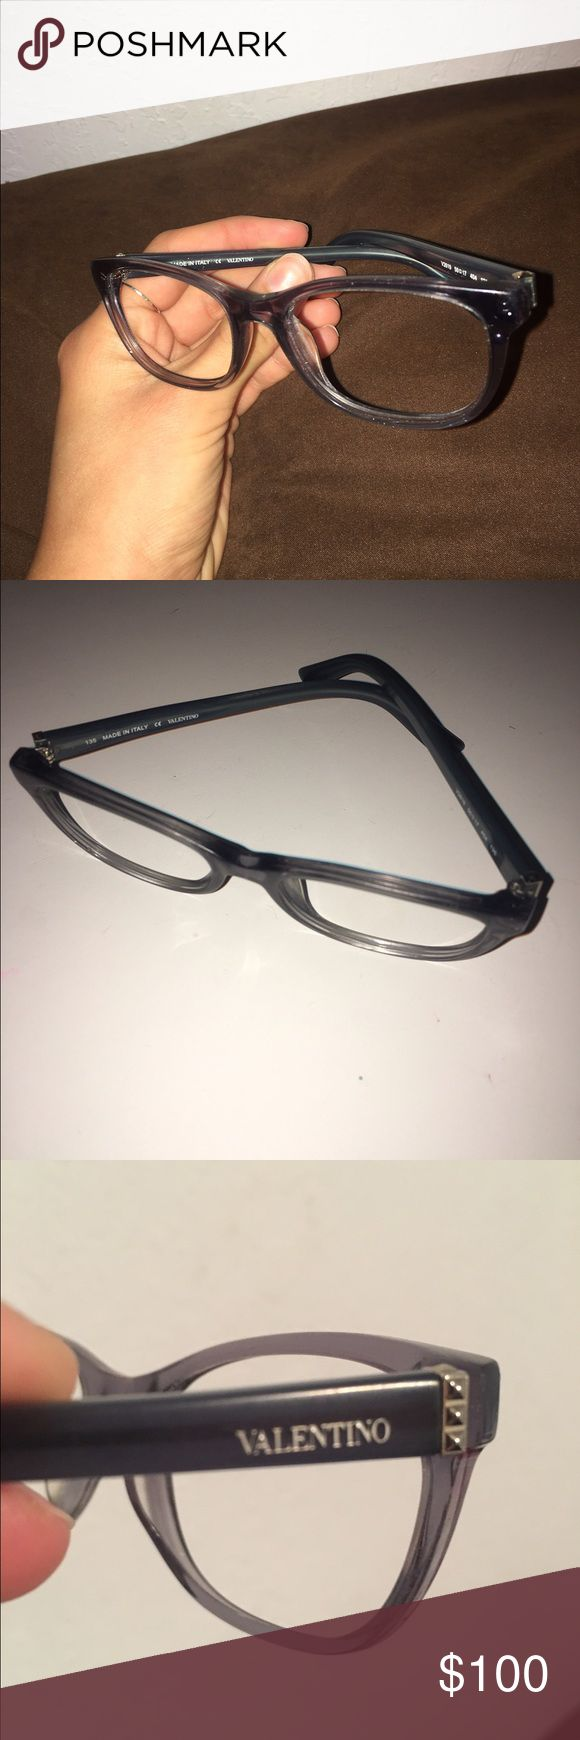 Valentino Glasses Frames! Blueish-grey Valentino glasses frames. Prescription lenses have been removed! Valentino Accessories Glasses